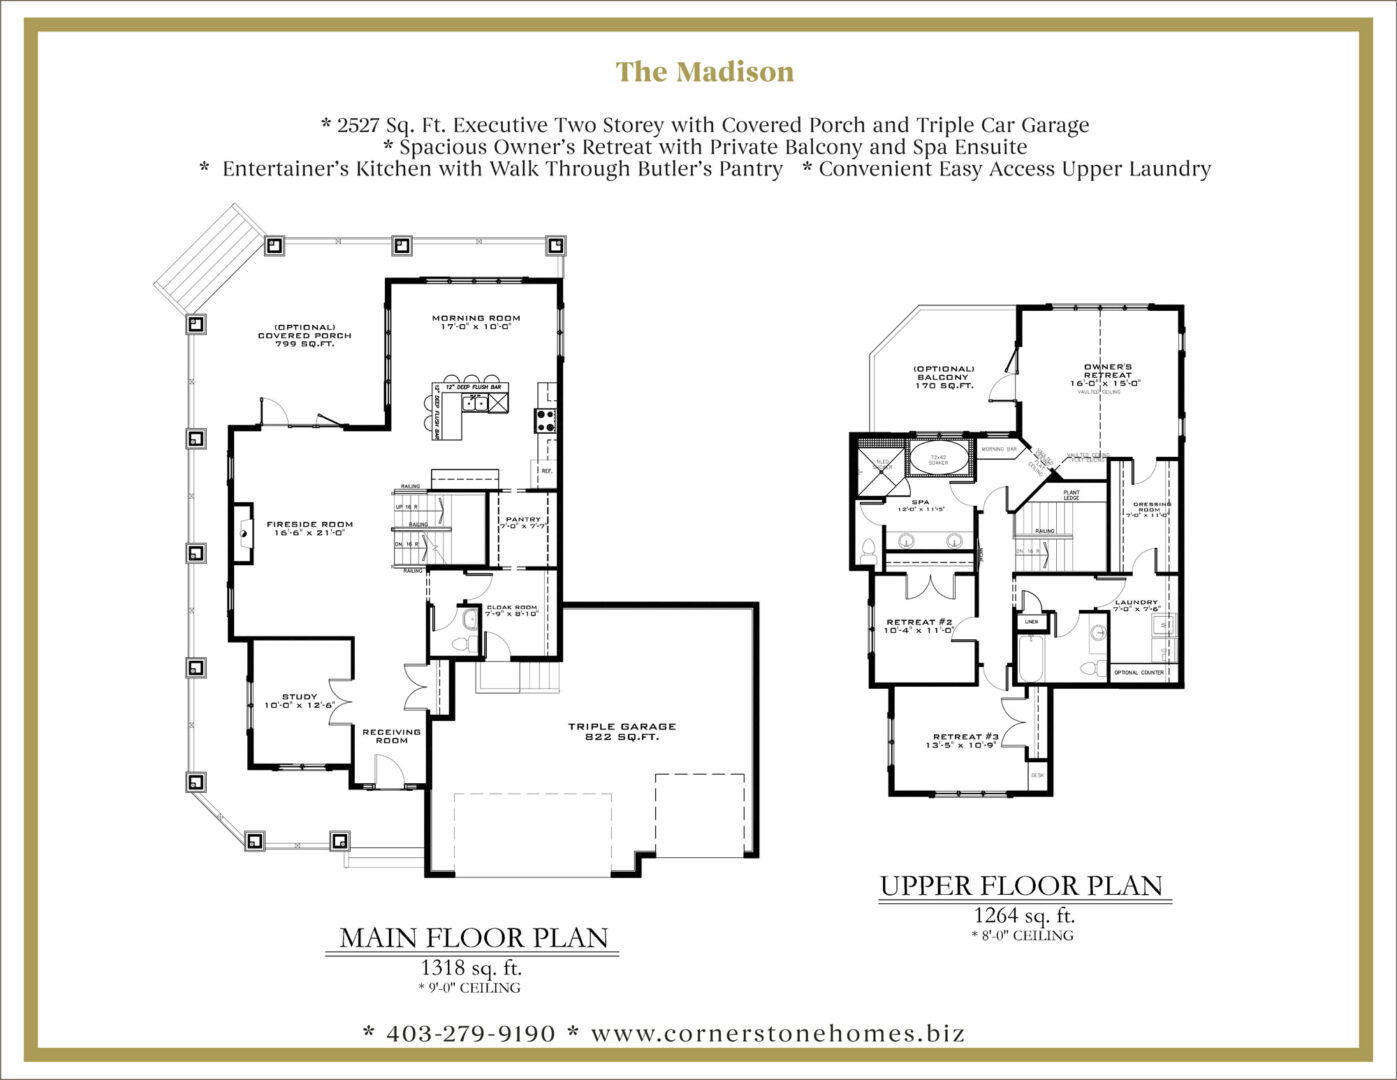 NEW-The-Madison-FLOOR-PLANS